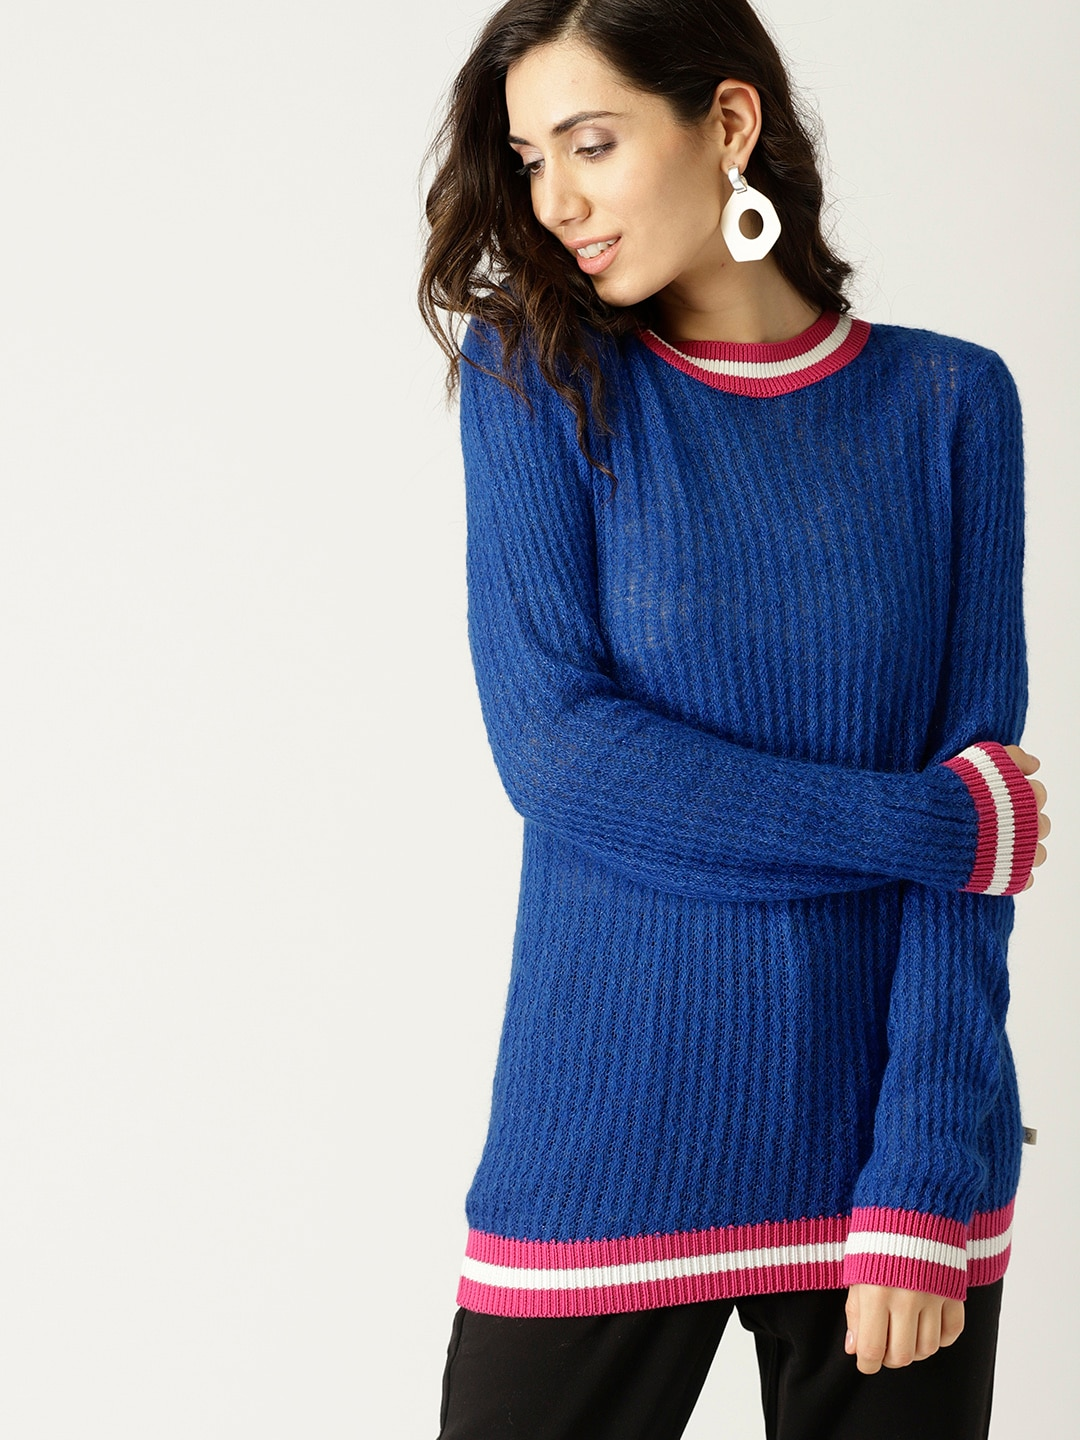 United Colors Of Benetton Sweaters - Buy United Colors Of Benetton Sweaters  Online in India d2f088788